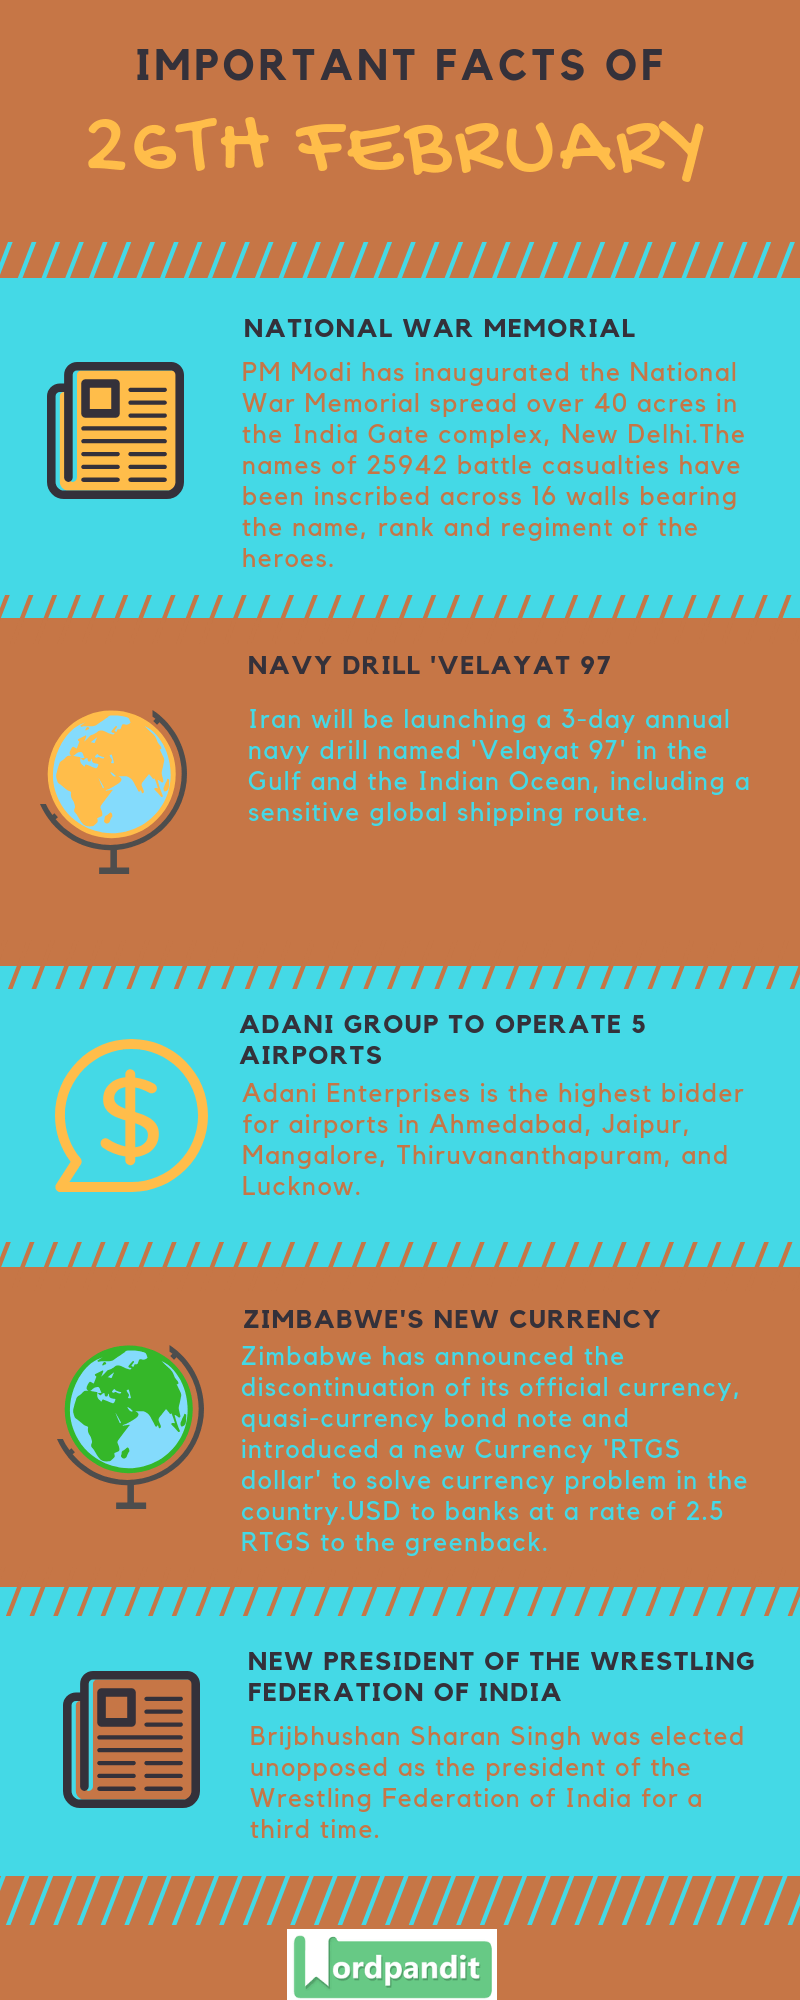 Daily Current Affairs 26 February 2019 Current Affairs Quiz 26 February 2019 Current Affairs Infographic